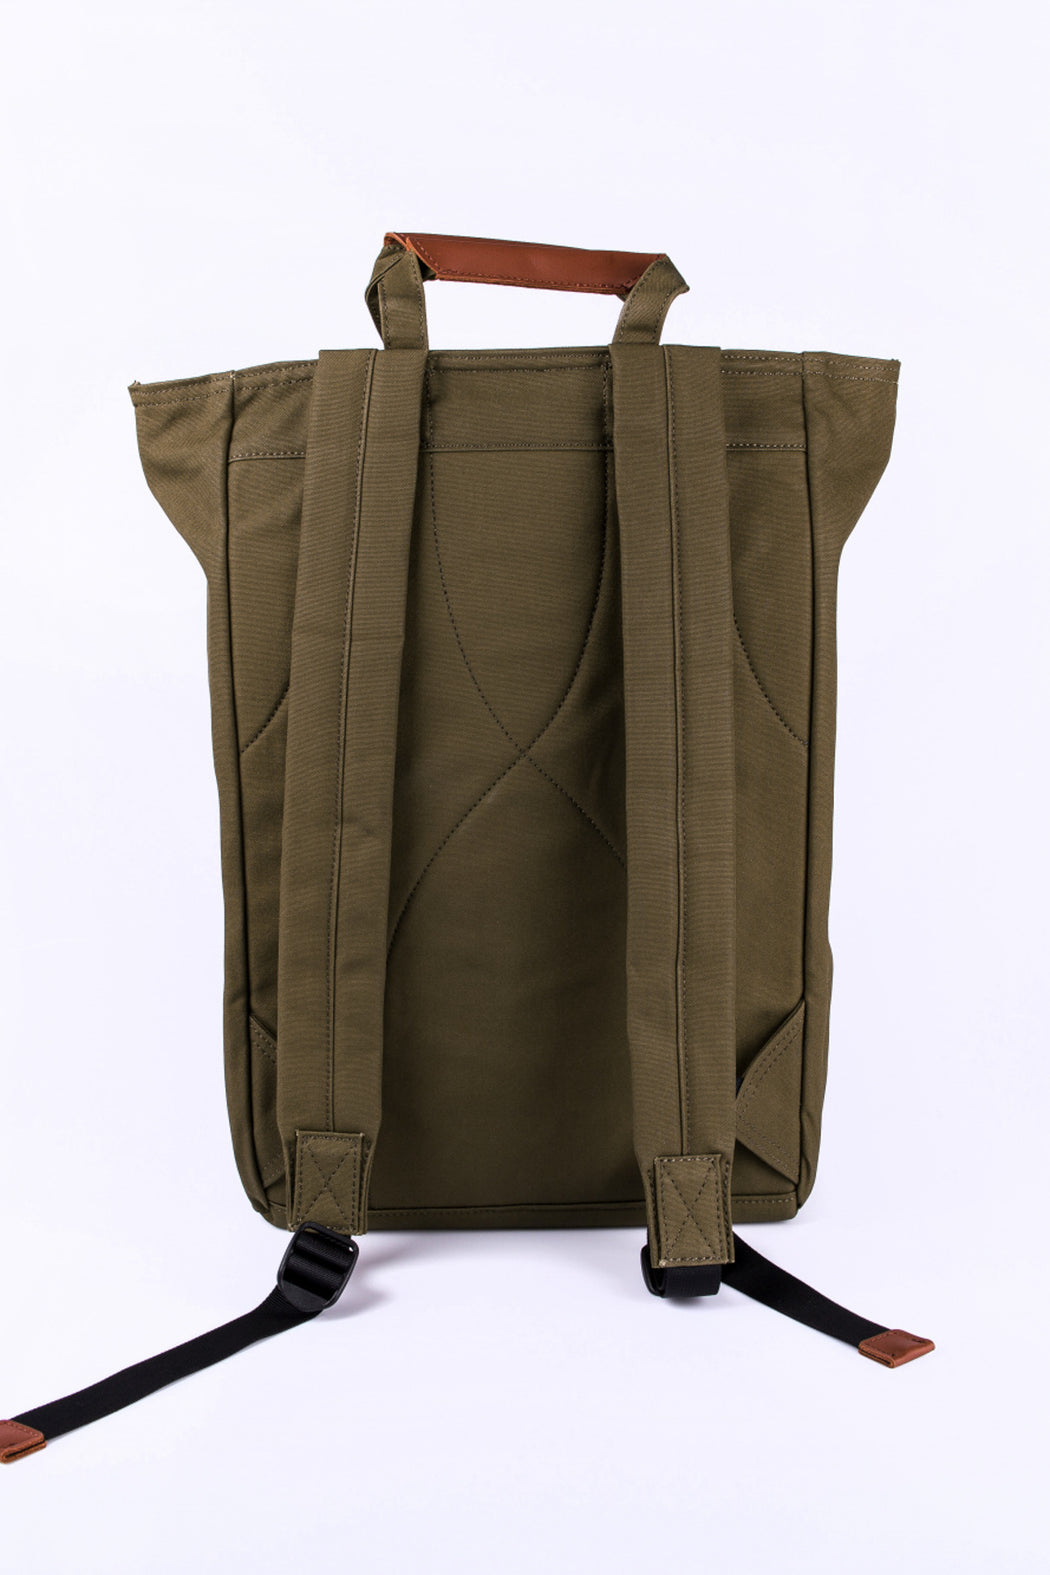 TONY Backpack/Tote bag olive brown